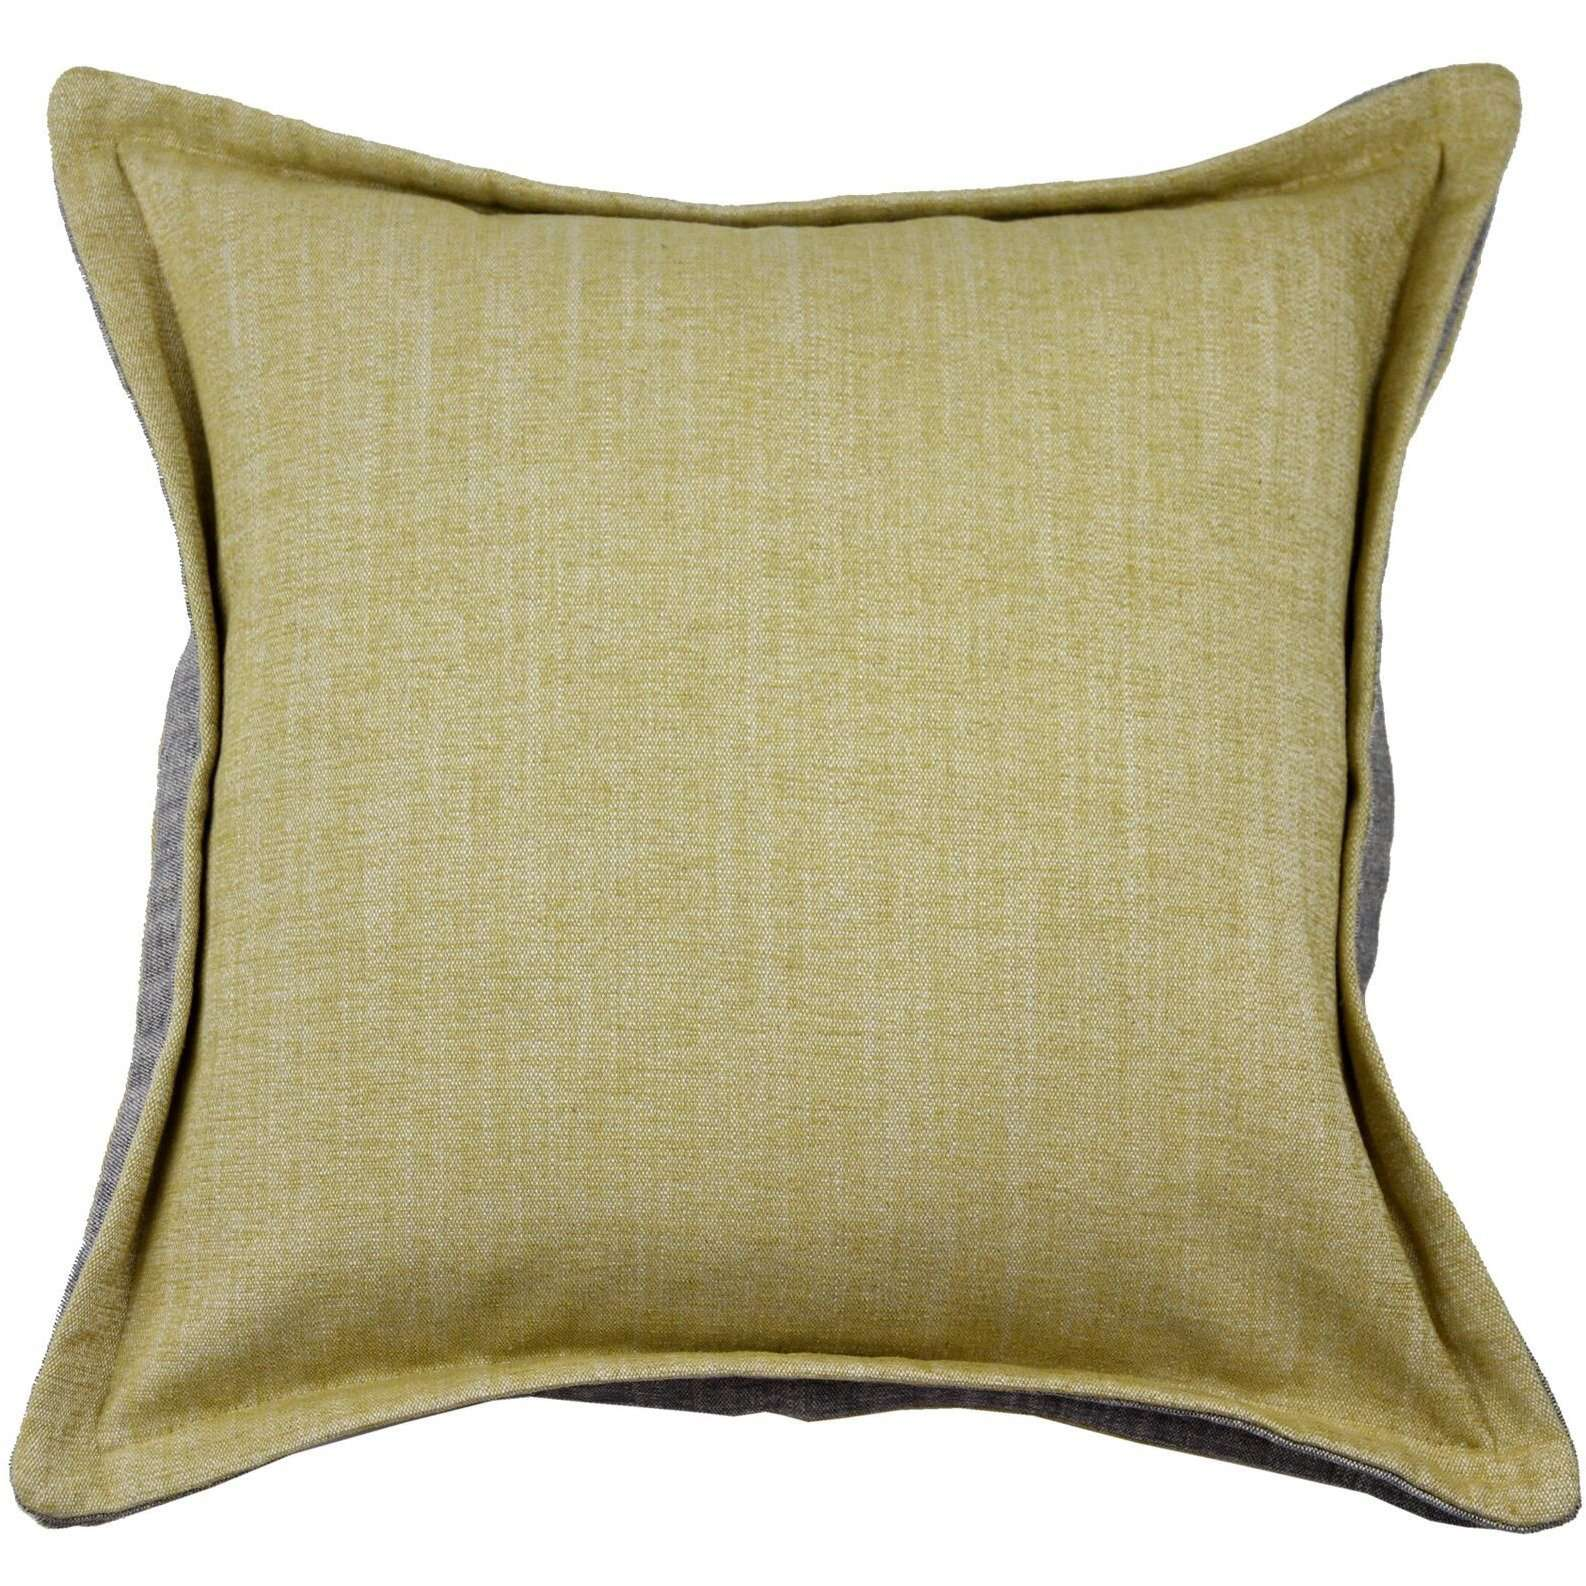 McAlister Textiles Rhumba Accent Ochre Yellow + Grey Cushion Cushions and Covers Cover Only 43cm x 43cm